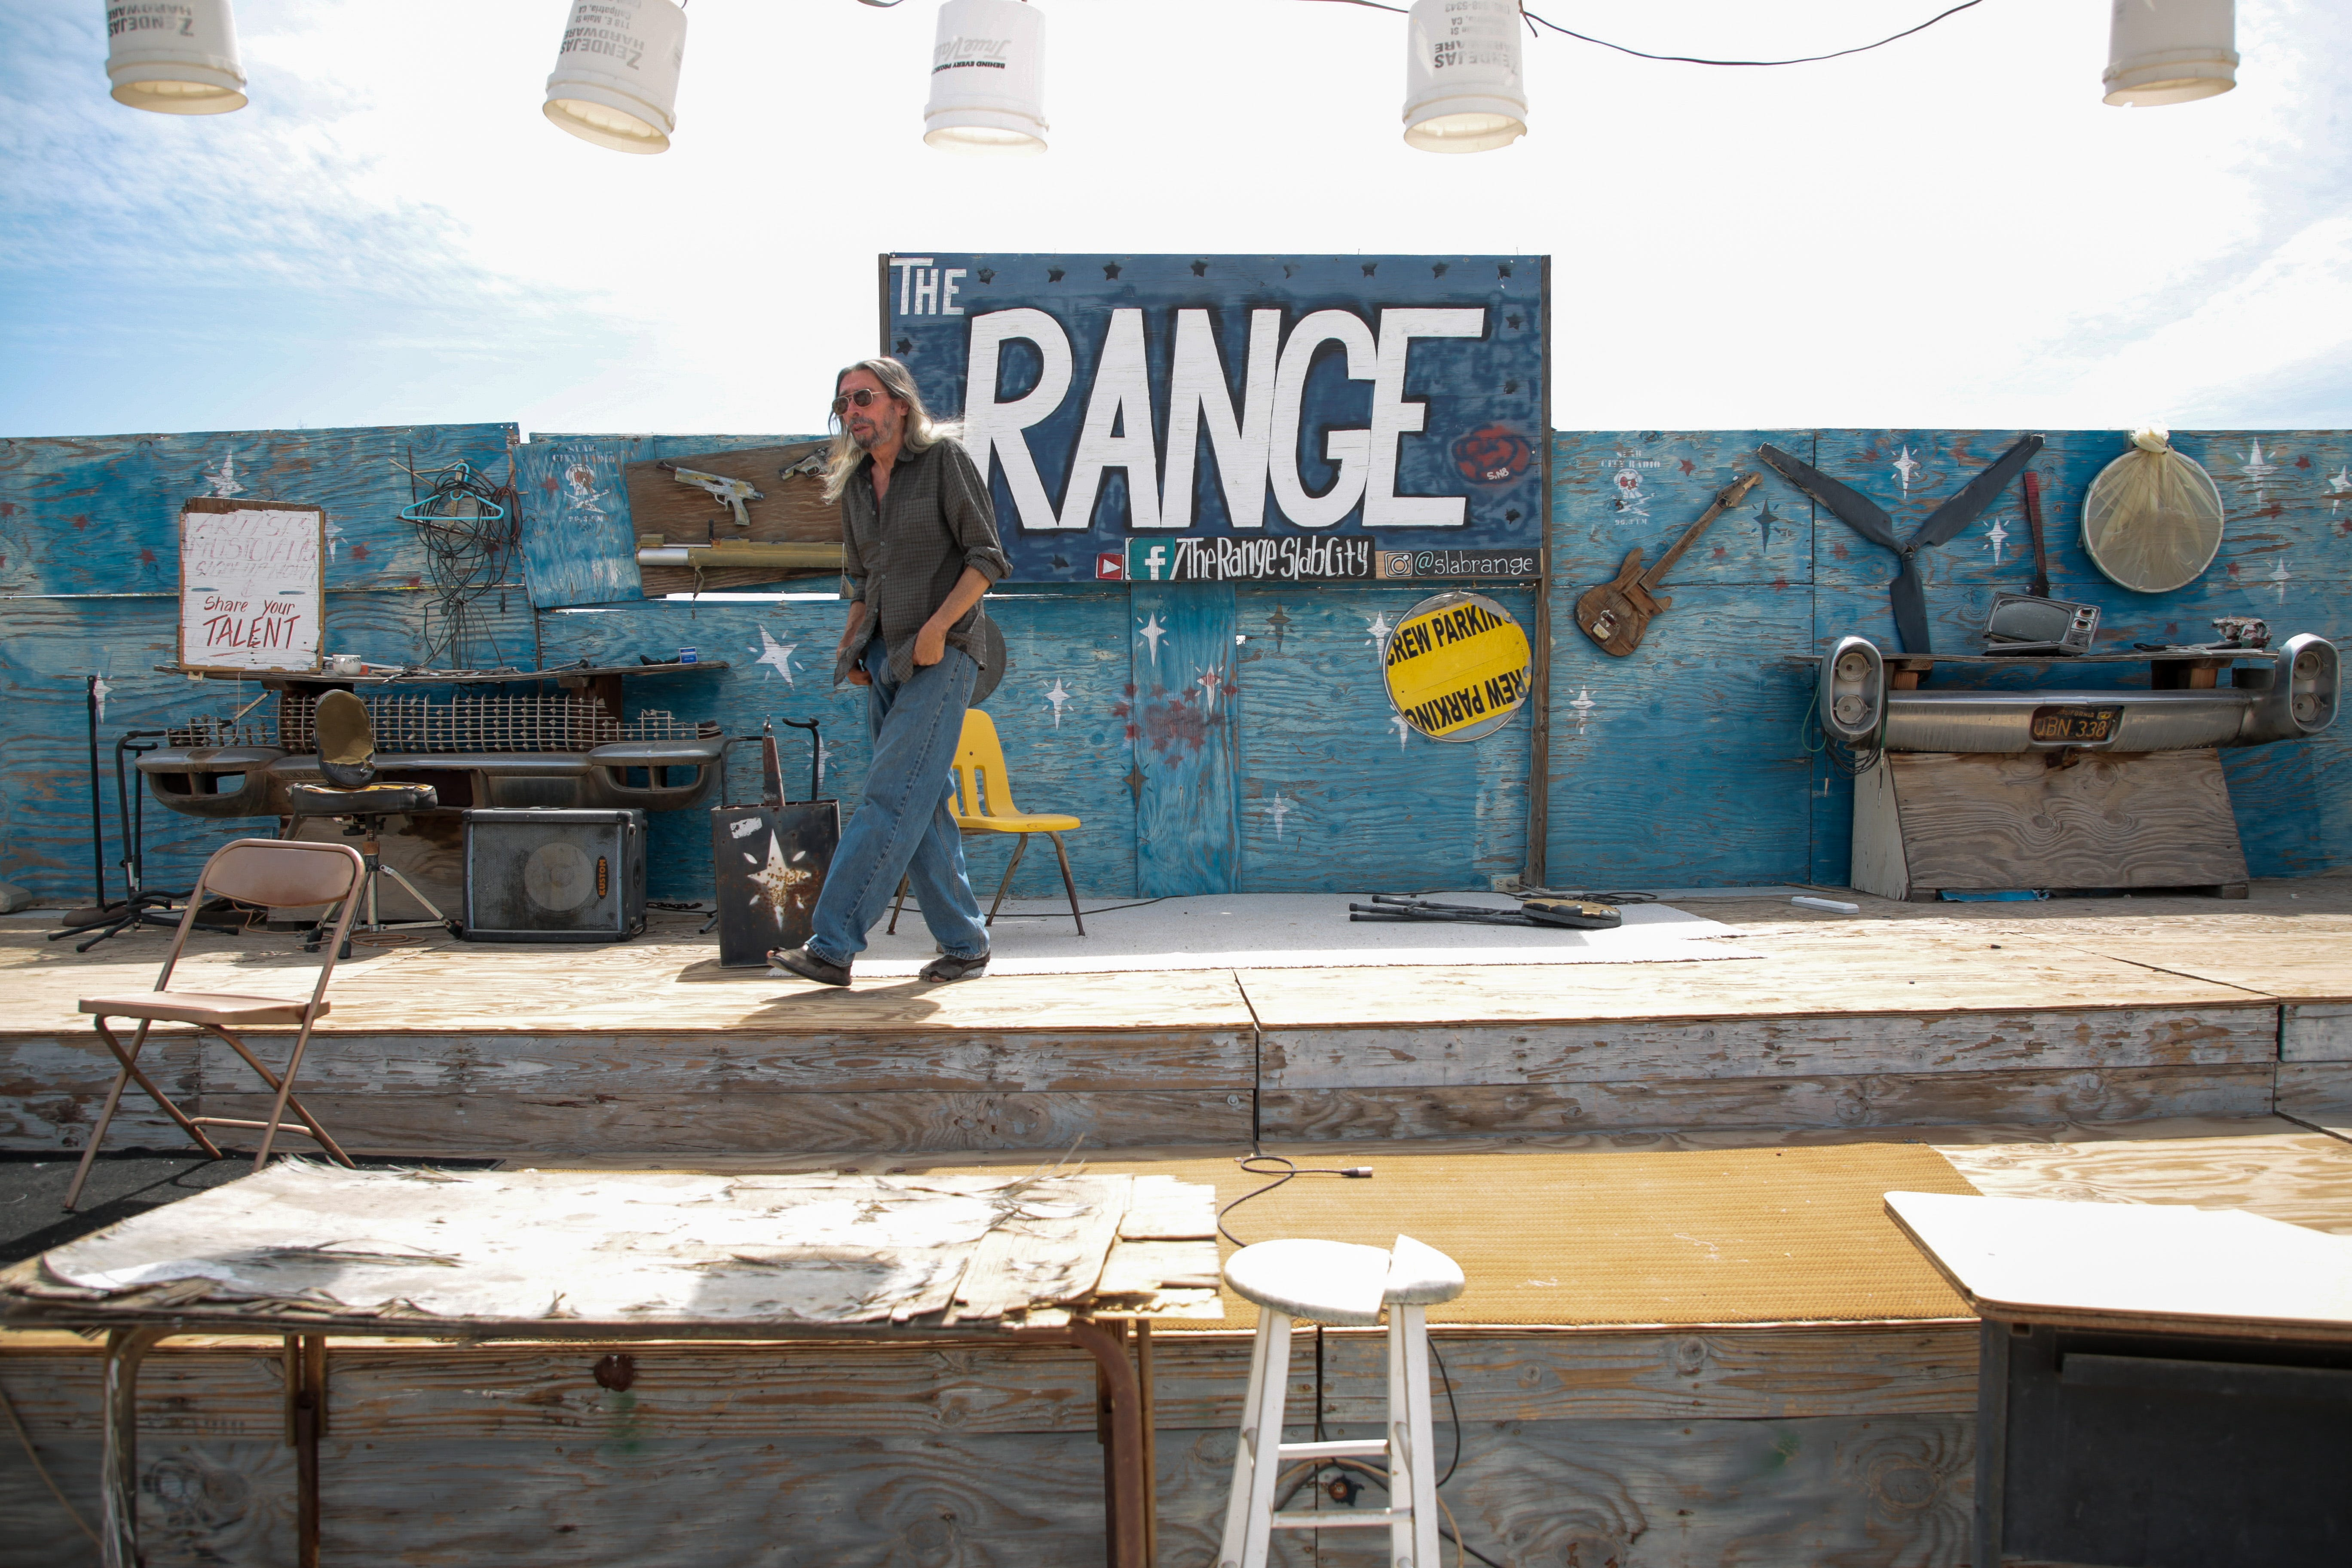 Carlos Gonzales walks on the stage at The Range in Slab City, Calif., on Monday, April 5, 2021.